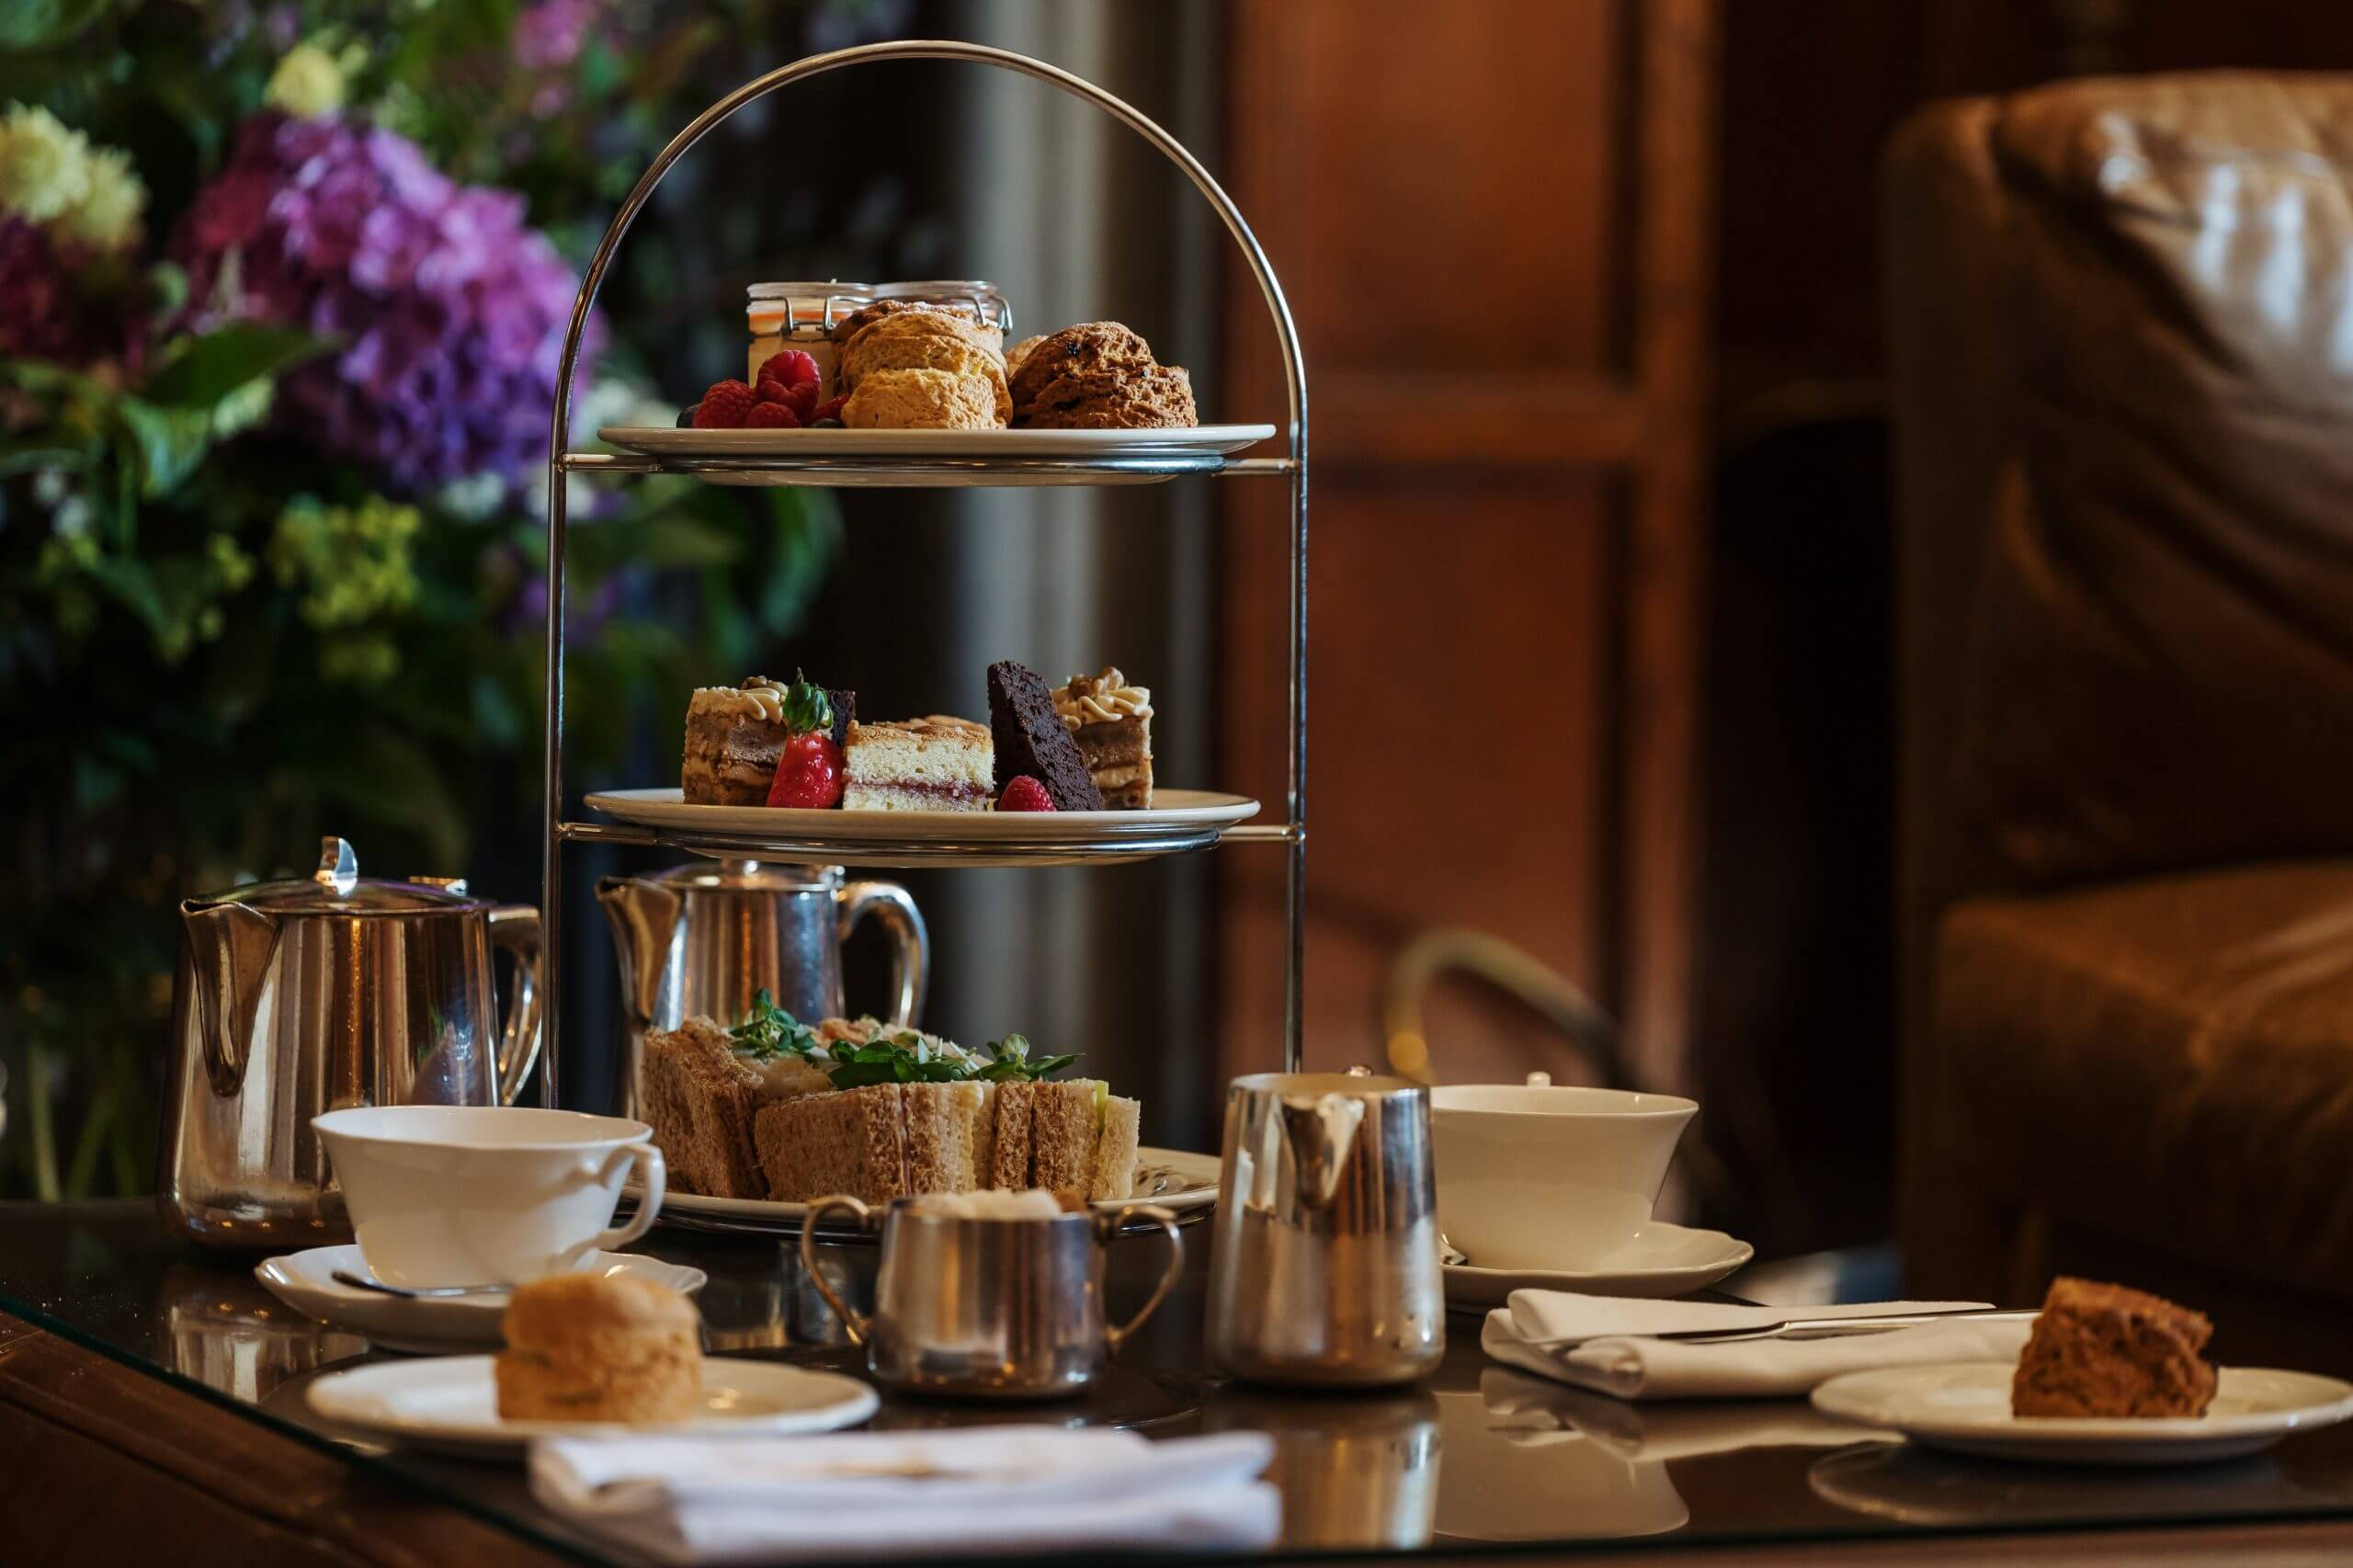 Our deals even include a spot of afternoon tea.